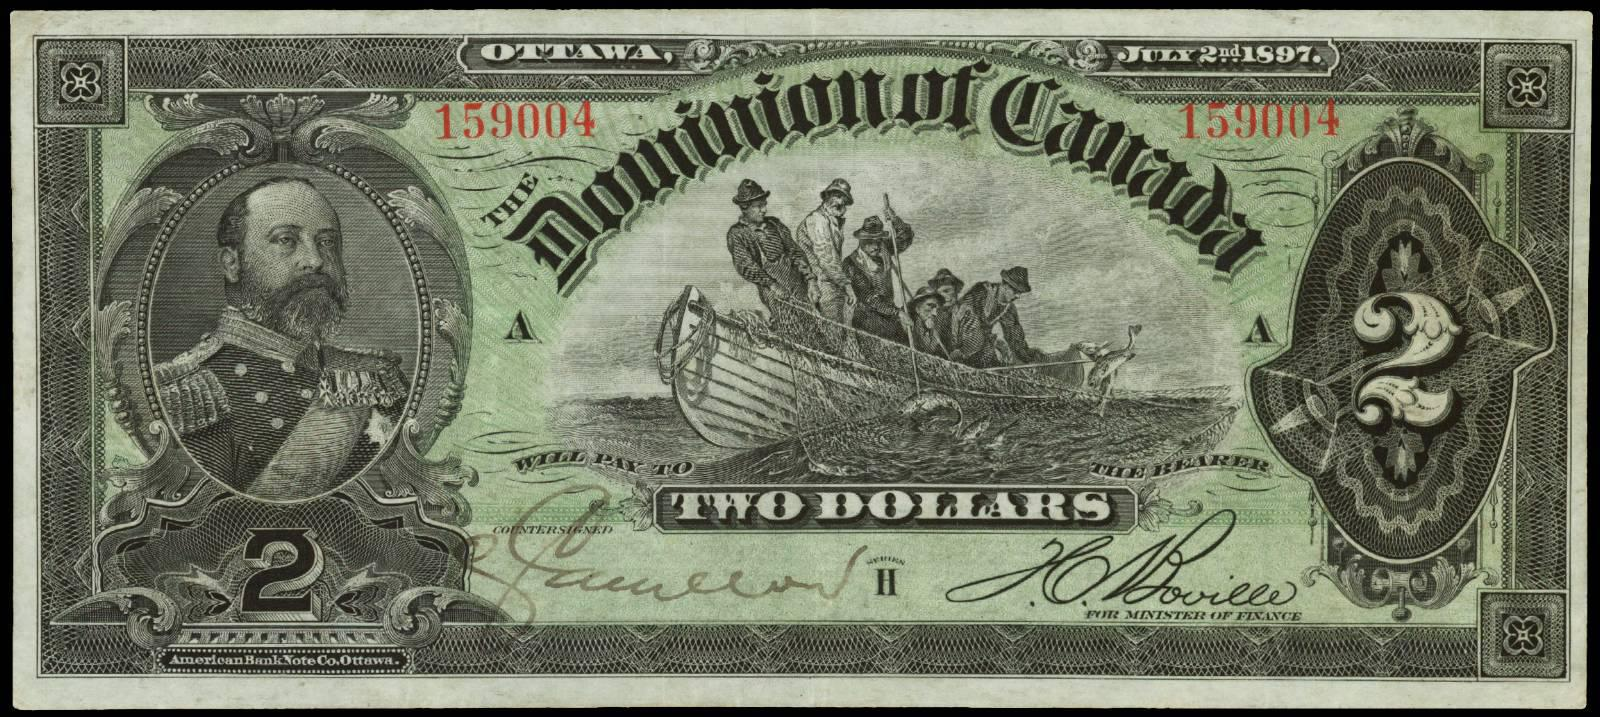 Value Of July 2nd 1897 2 Bill From The